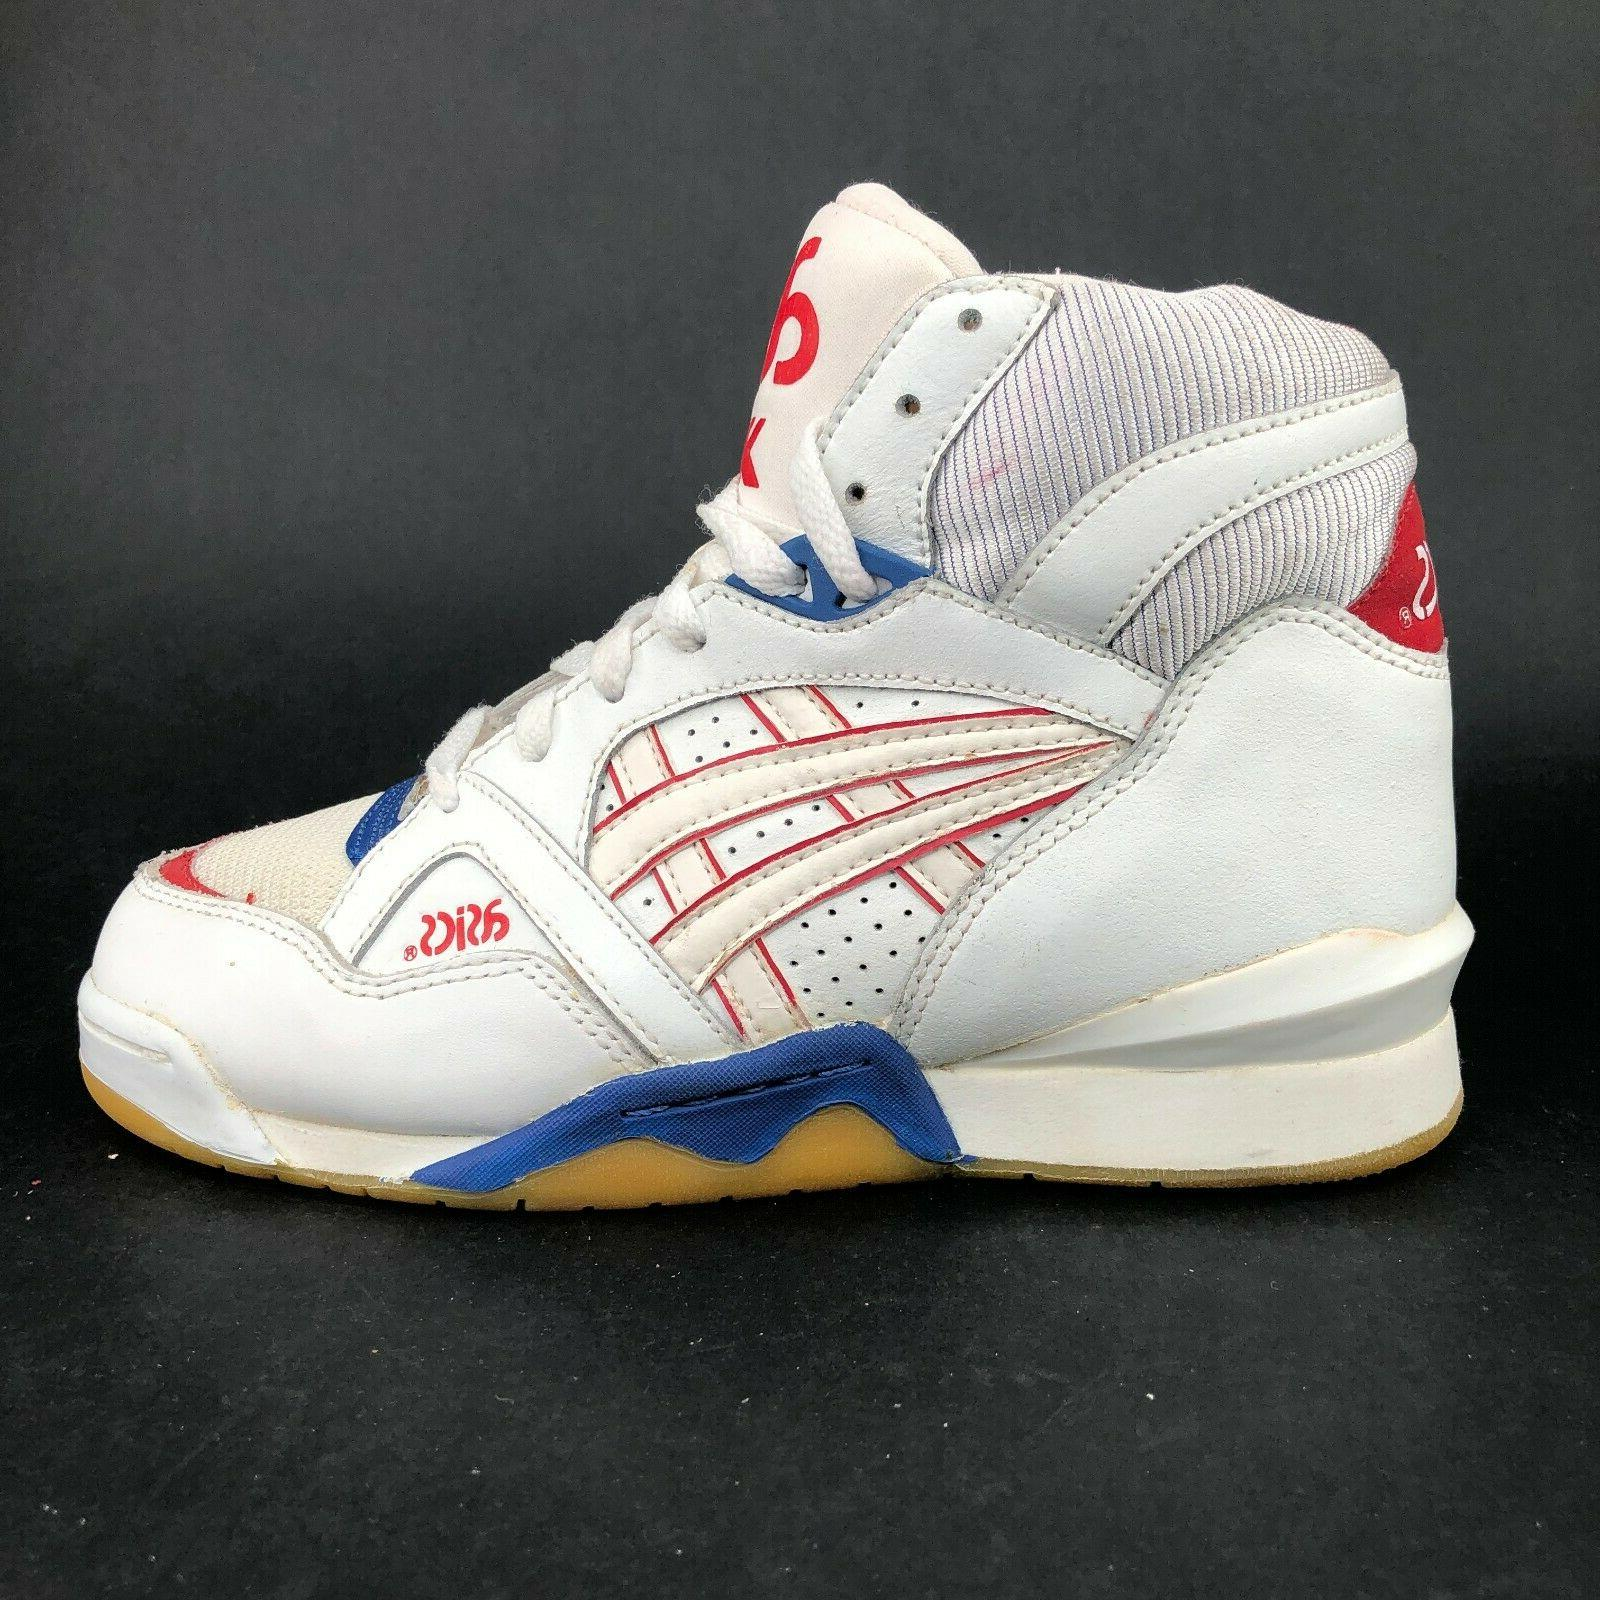 ASICS White High Basketball Sneakers Ups